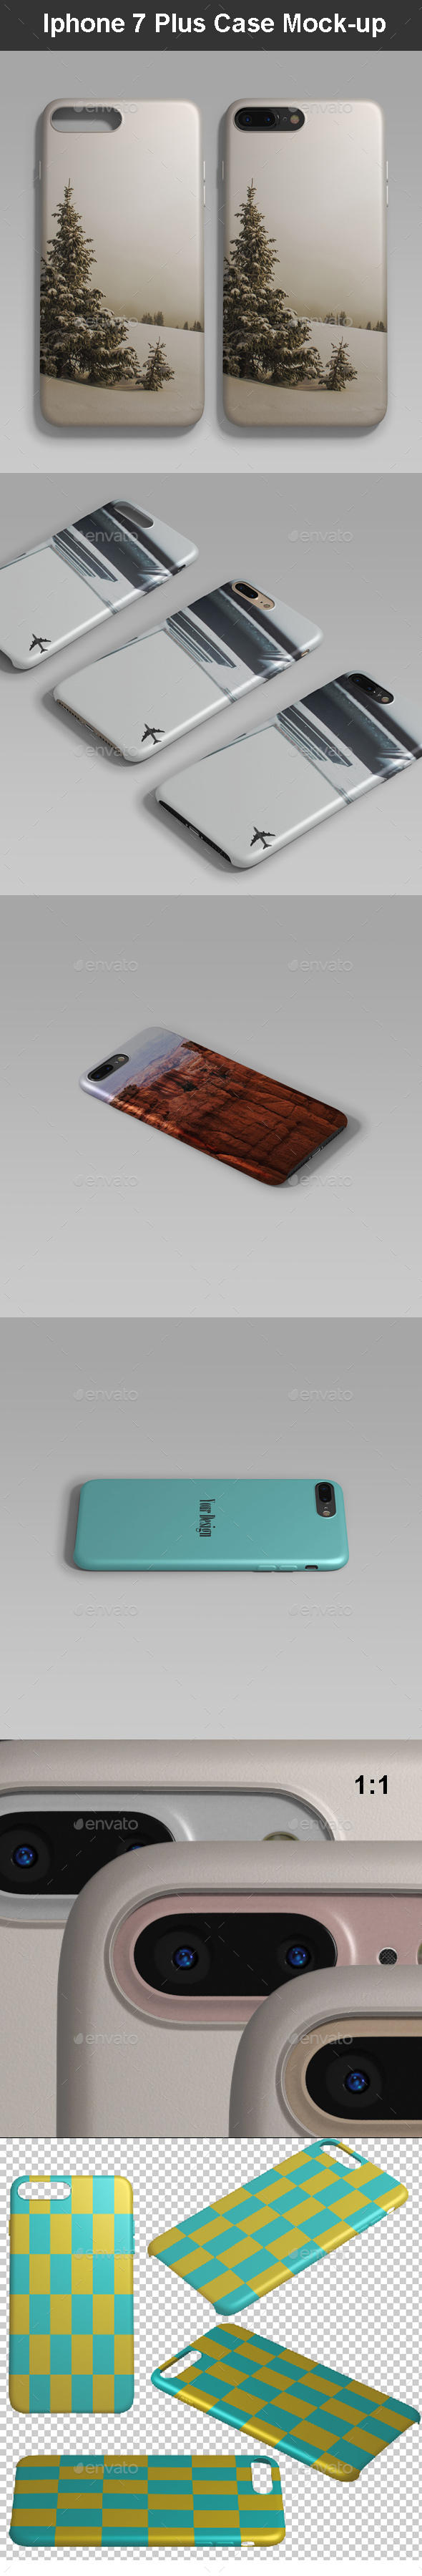 phone 7 plus case mock up mockup psd templates and template